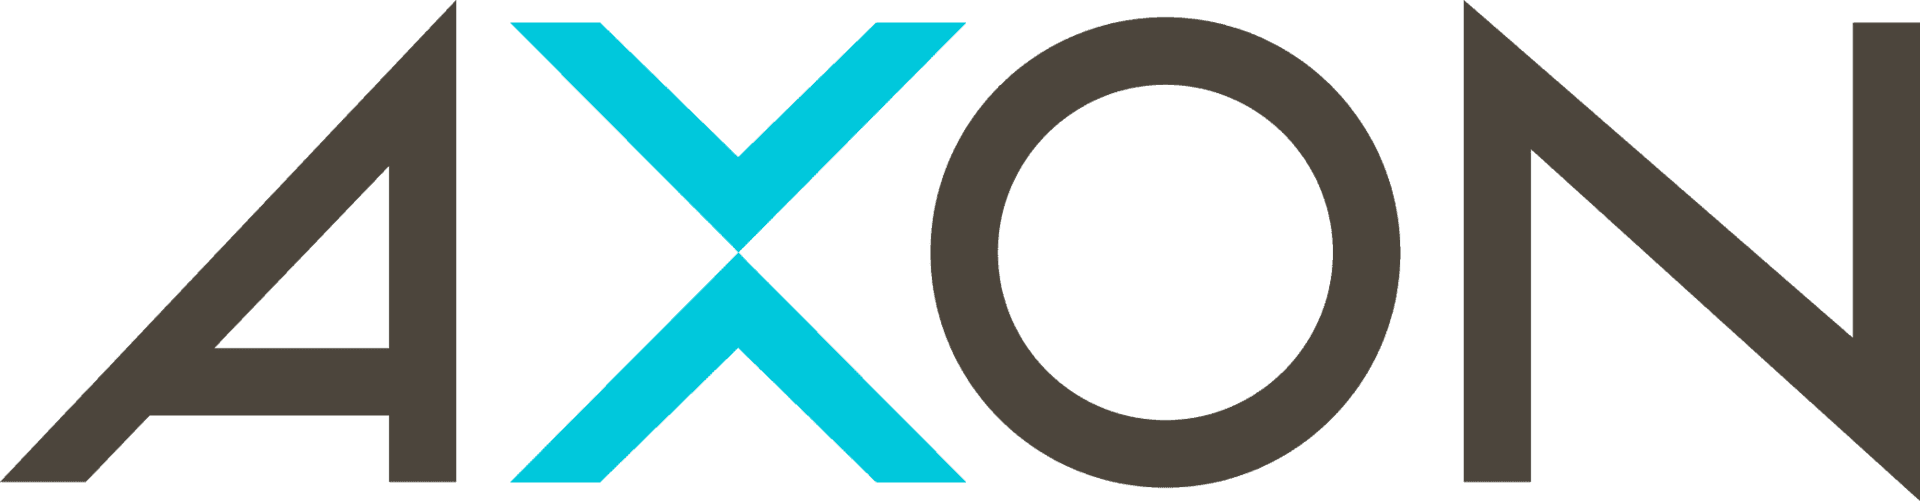 Axon Adds New Module to PEAR